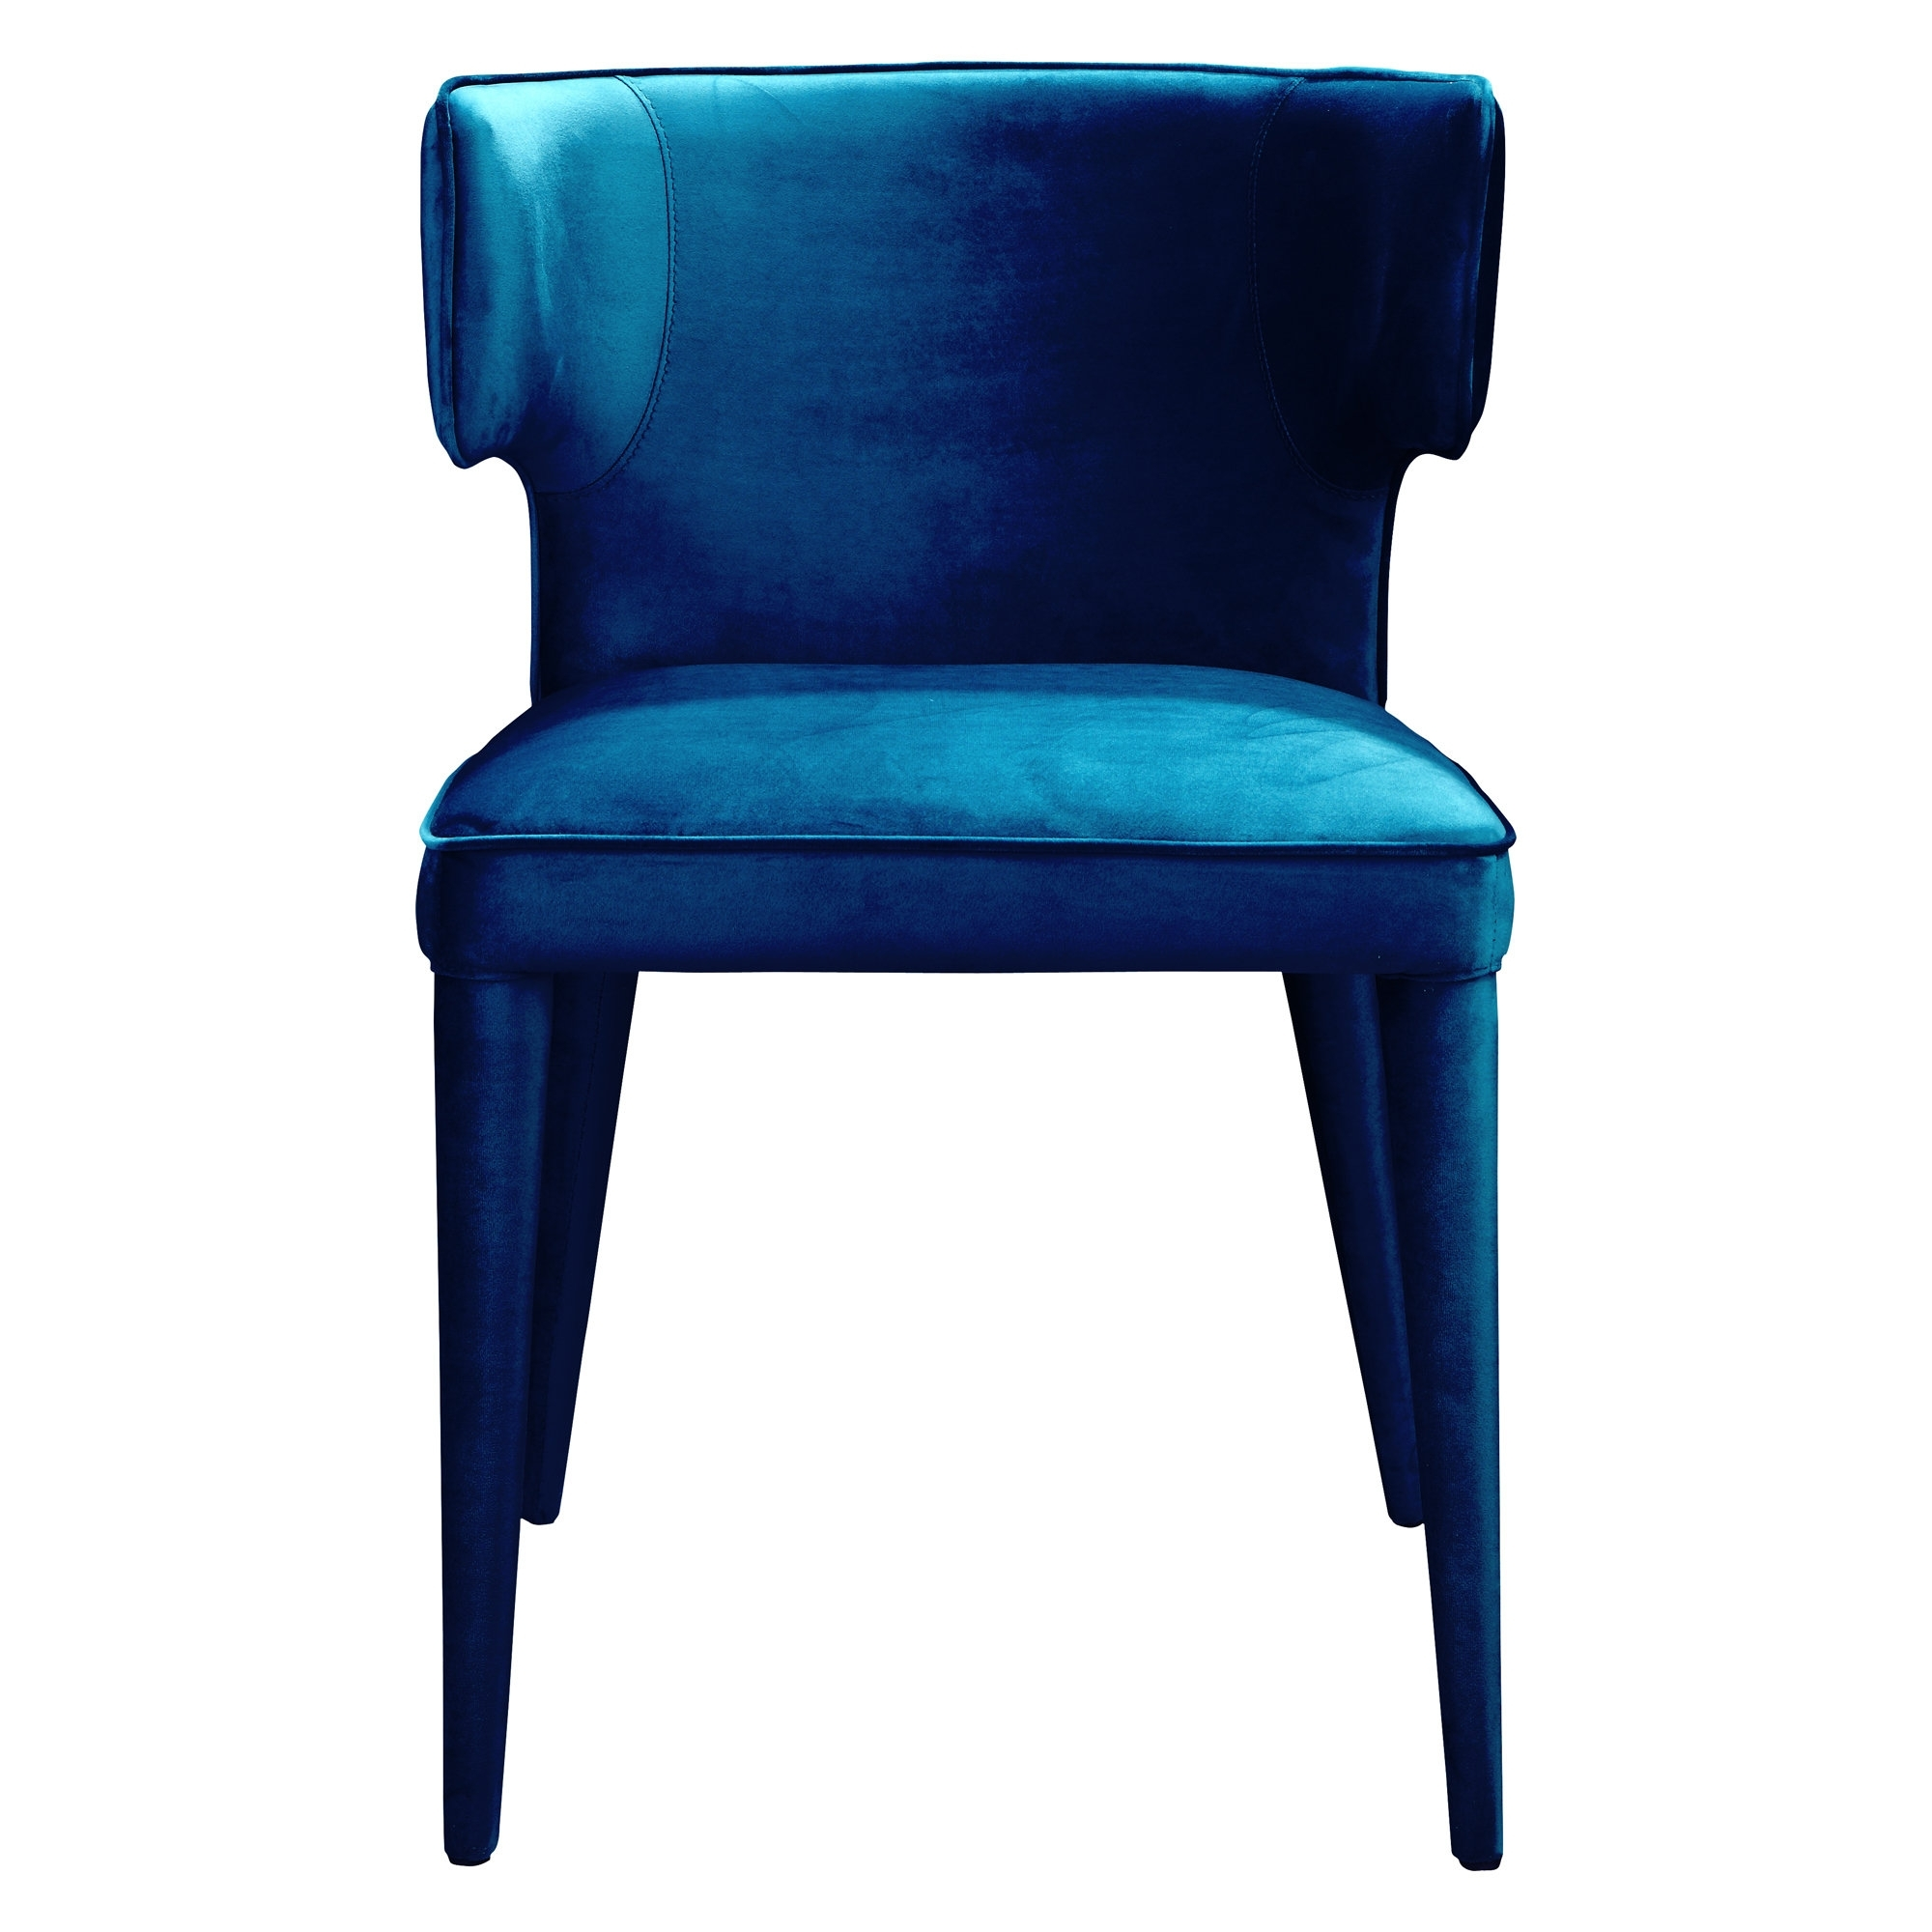 Caden Upholstered Side Chairs Within Famous Everly Quinn Kartik Upholstered Dining Chair & Reviews (View 11 of 20)